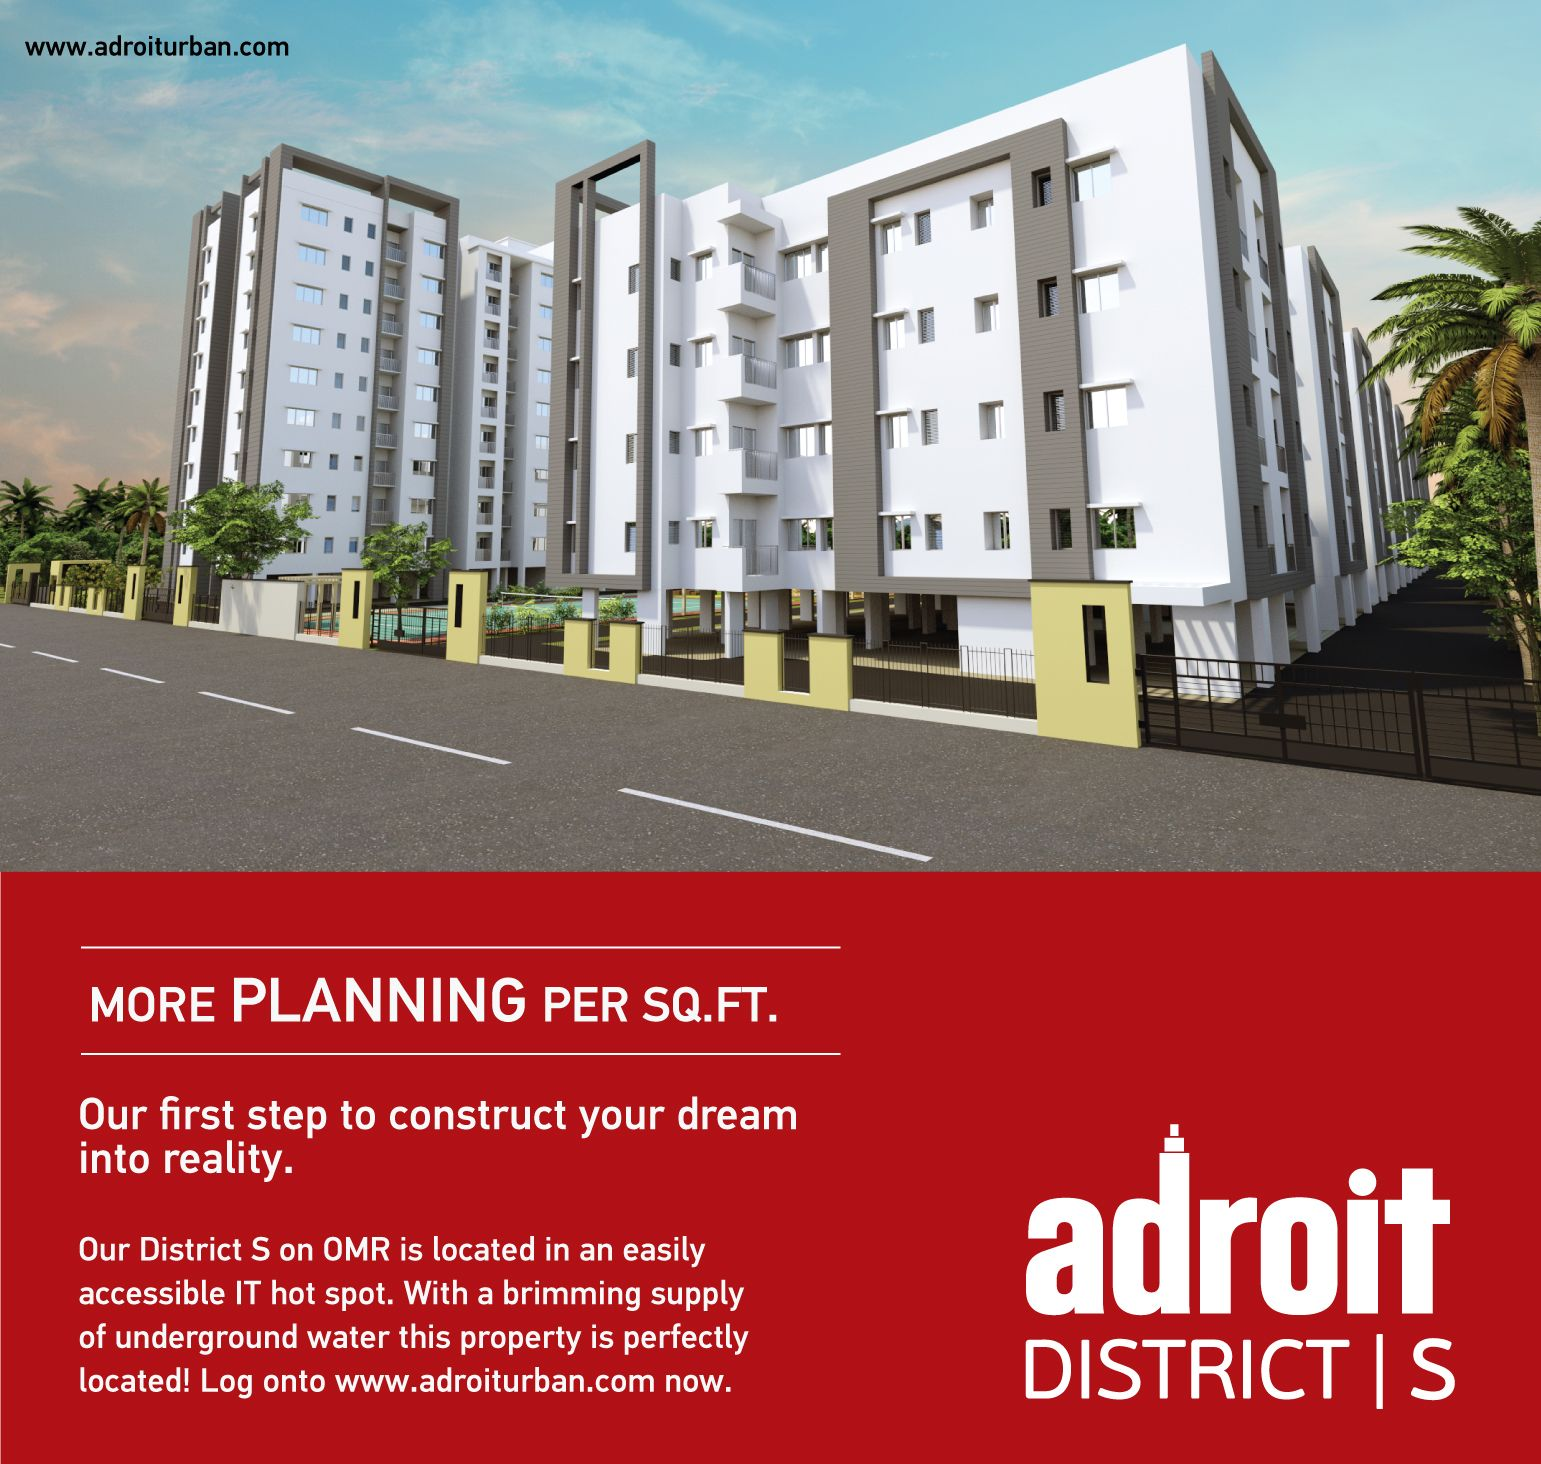 We believe planning is bringing the future into the present.  Visit www.adroiturban.com or call 044 46-000-999 for more details.